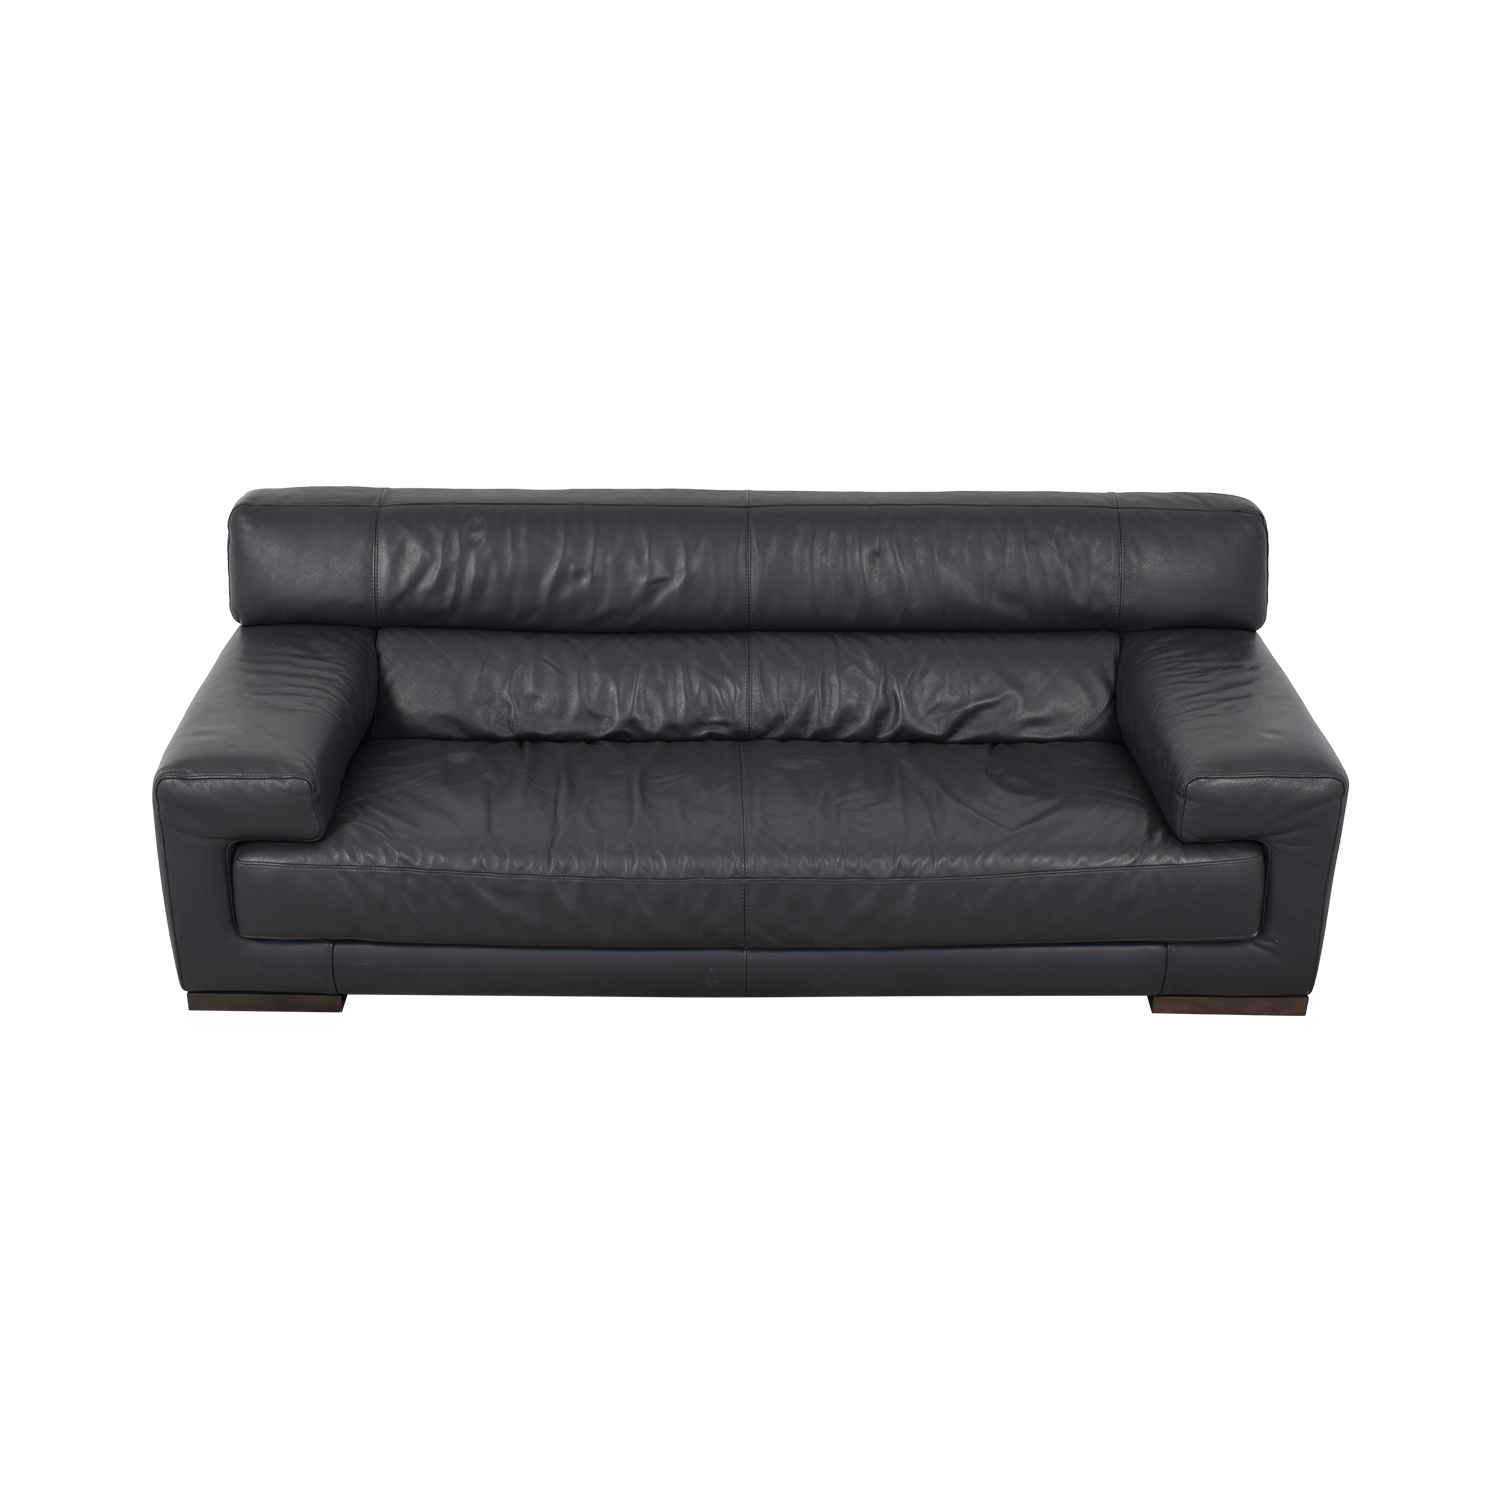 76% OFF - Contemporary Leather Sofa / Sofas